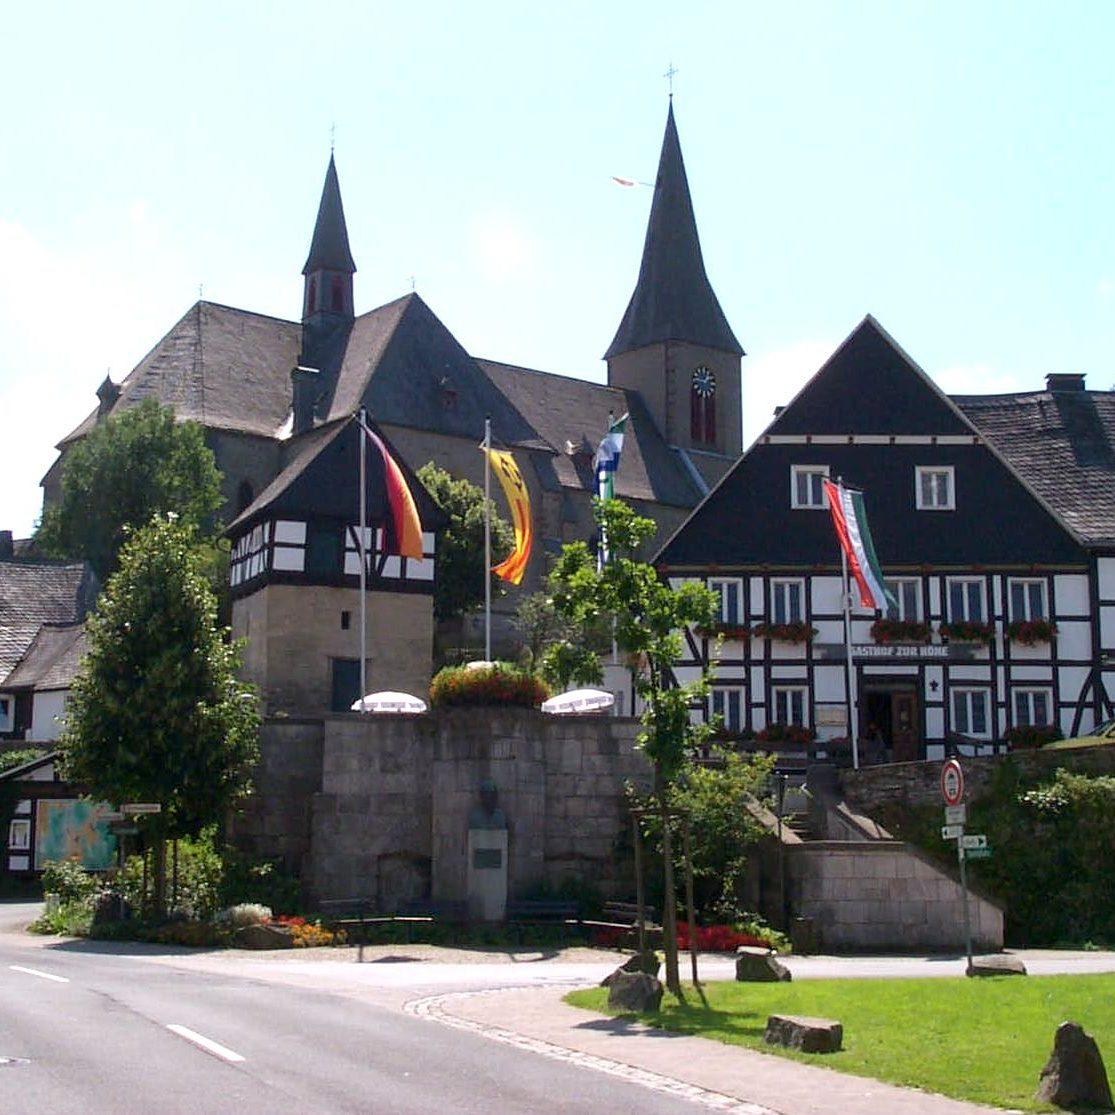 Assinghausen